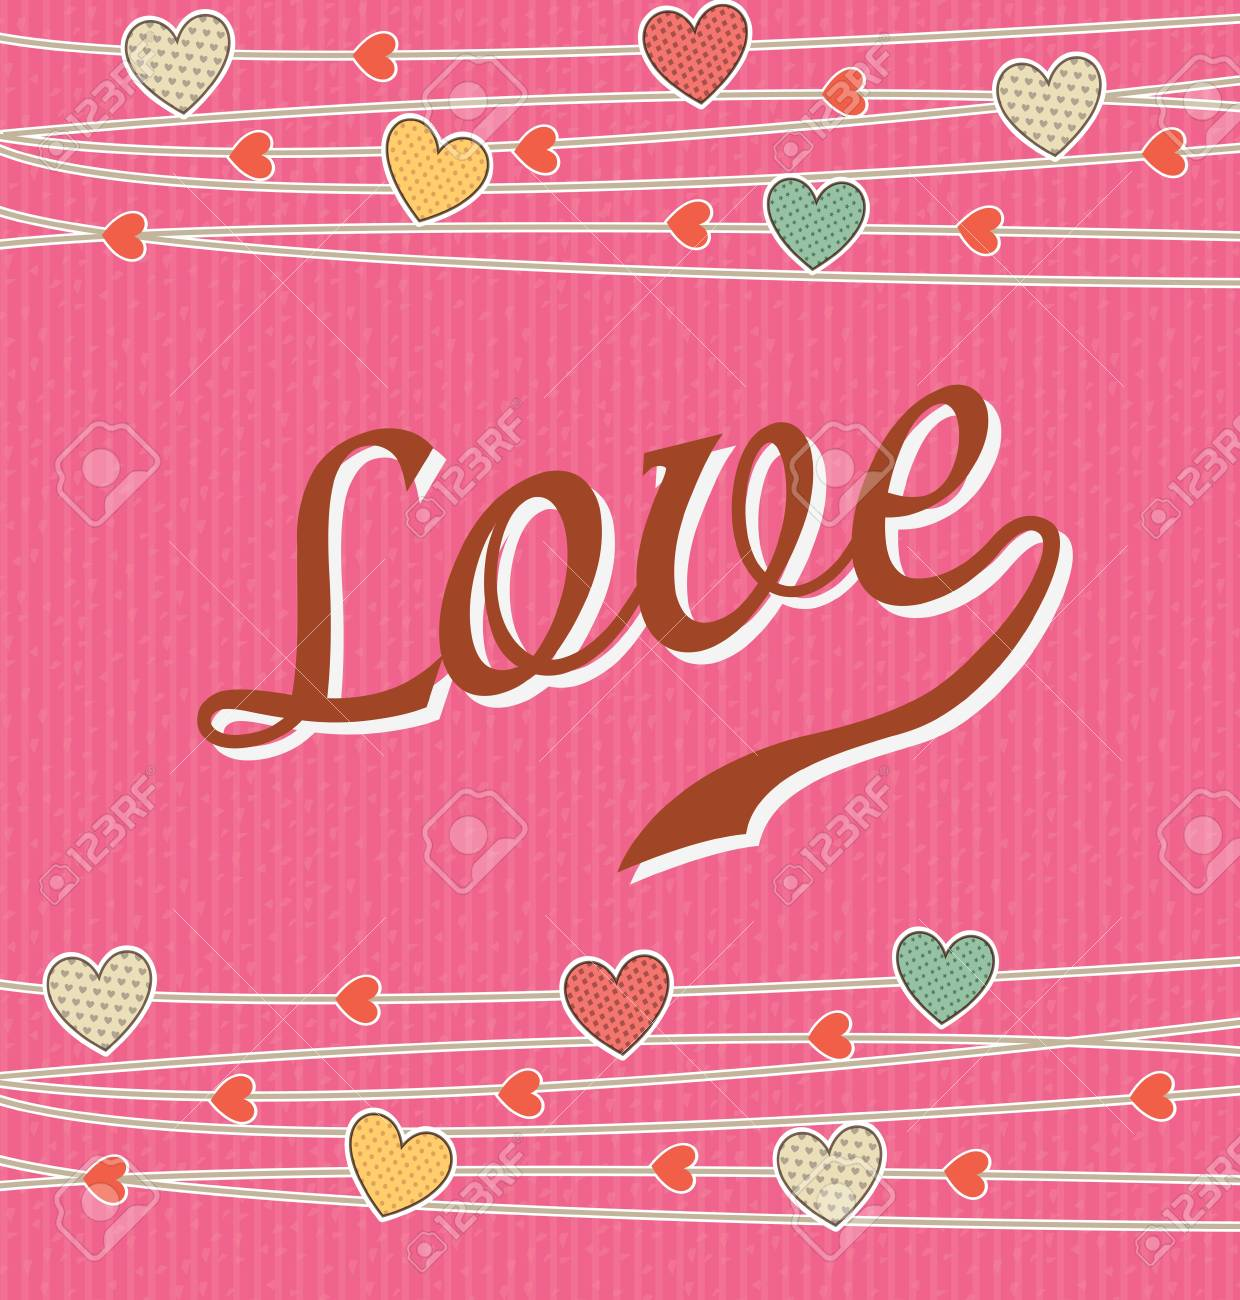 Love card over pink background illustration Stock Vector - 19307233